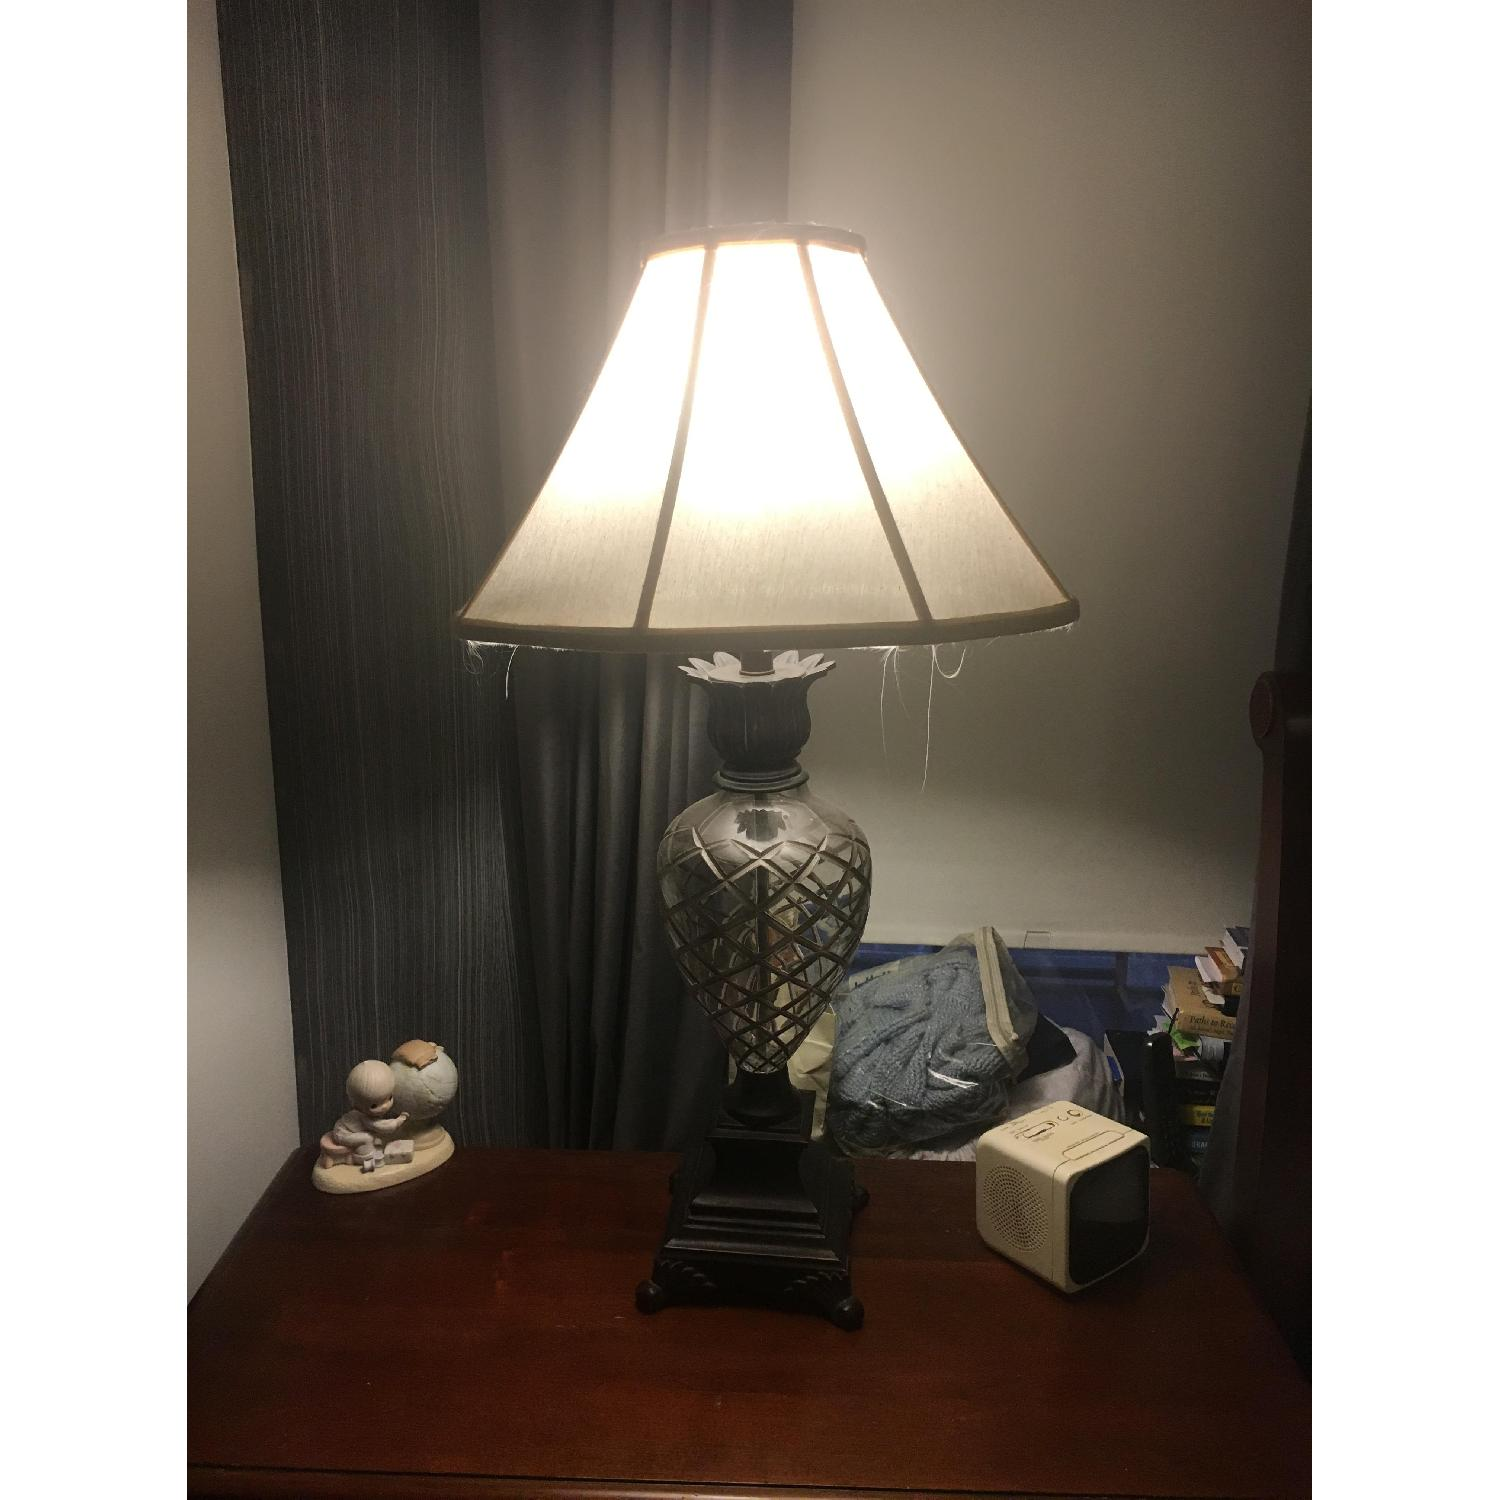 Ethan Allen Pineapple Lamps in Silver - image-2